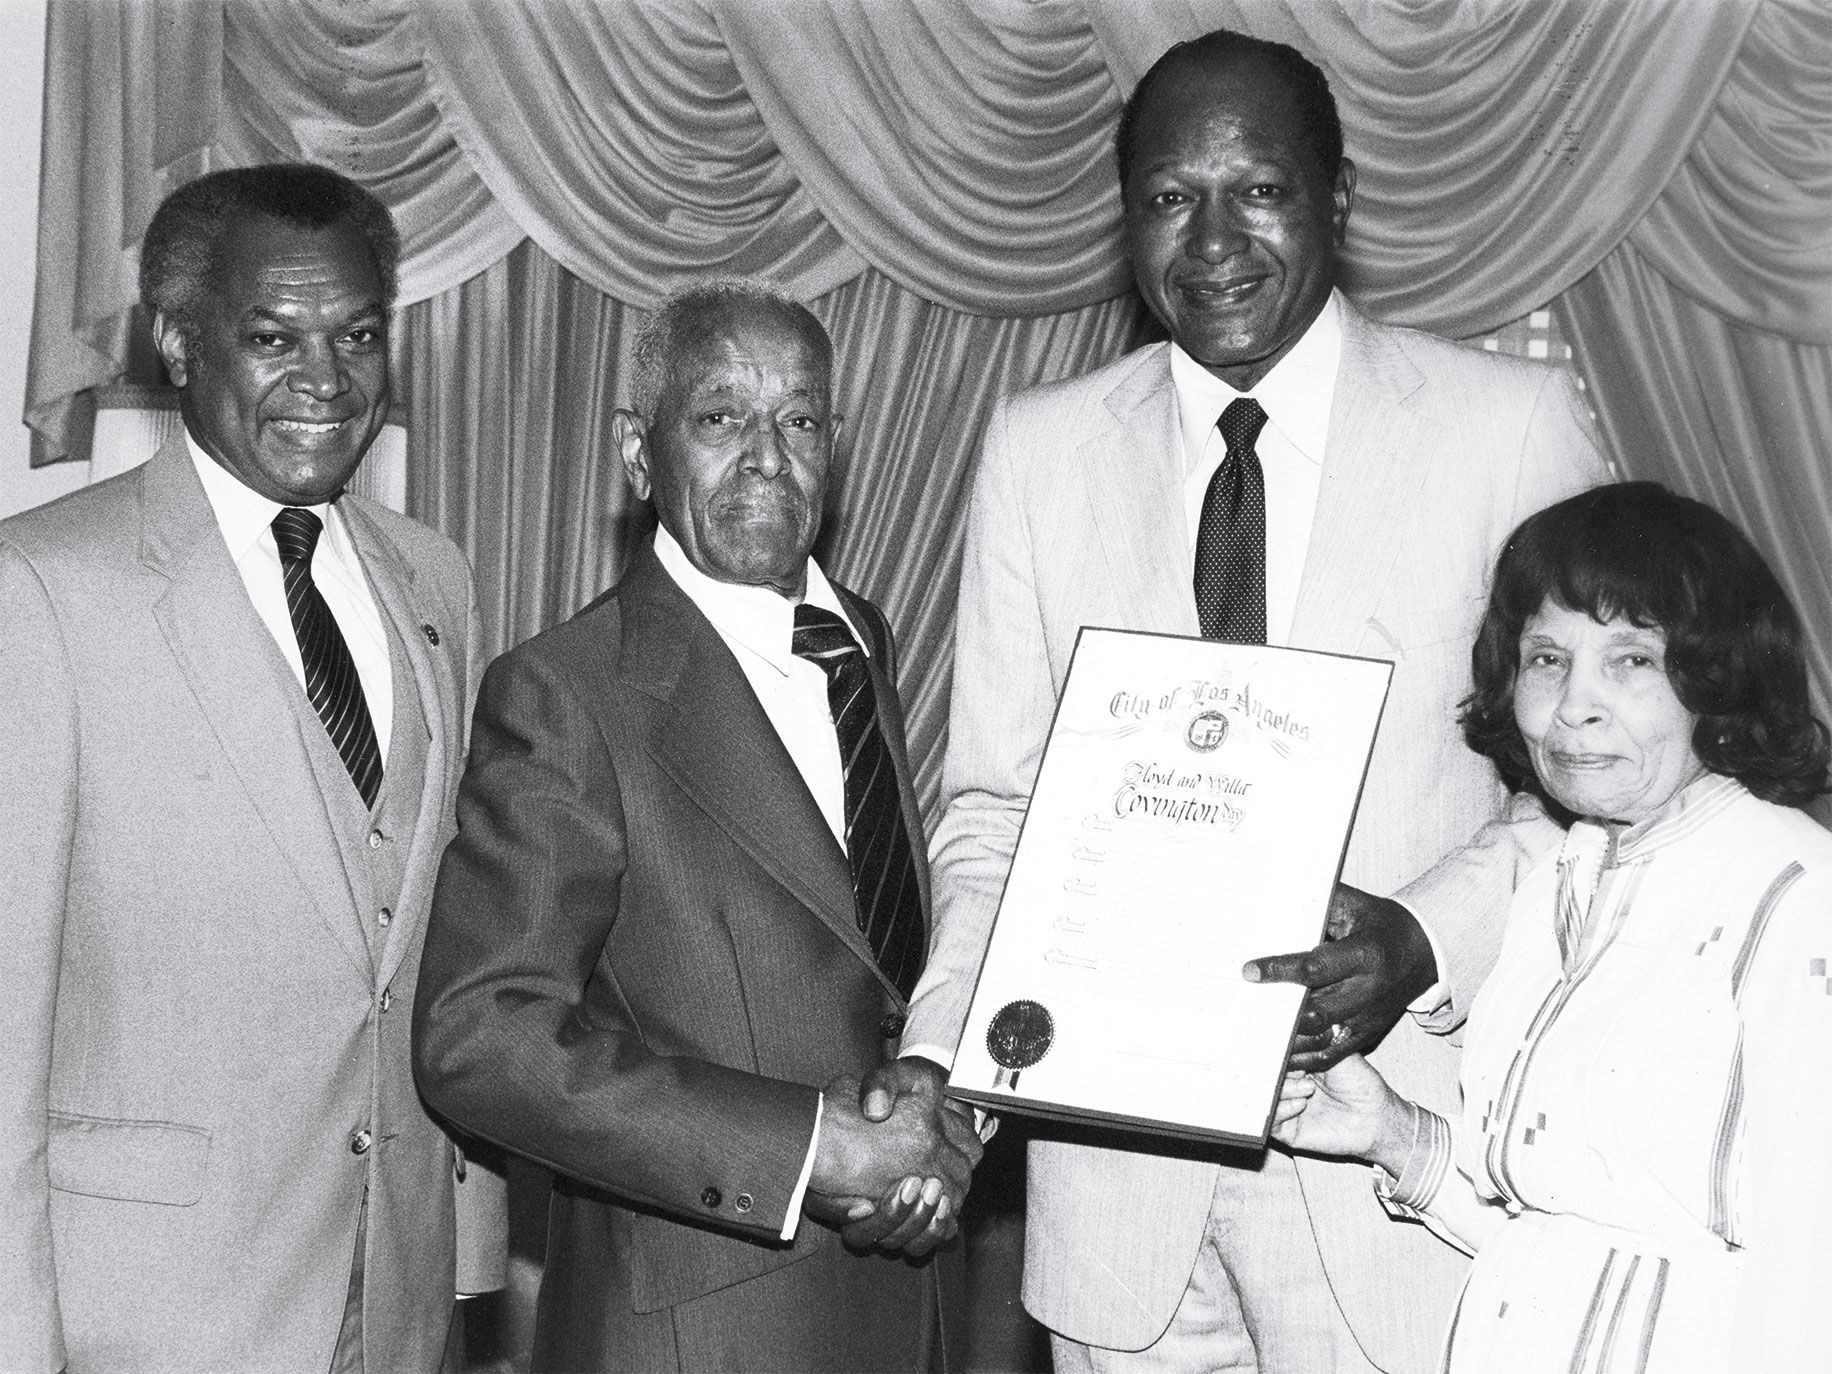 L.A. mayor Tom Bradley holds a certificate declaring April 24, 1984, as Floyd and Alma Covington Day; he's joined by John Mack (far left), then president of the Los Angeles Urban League.